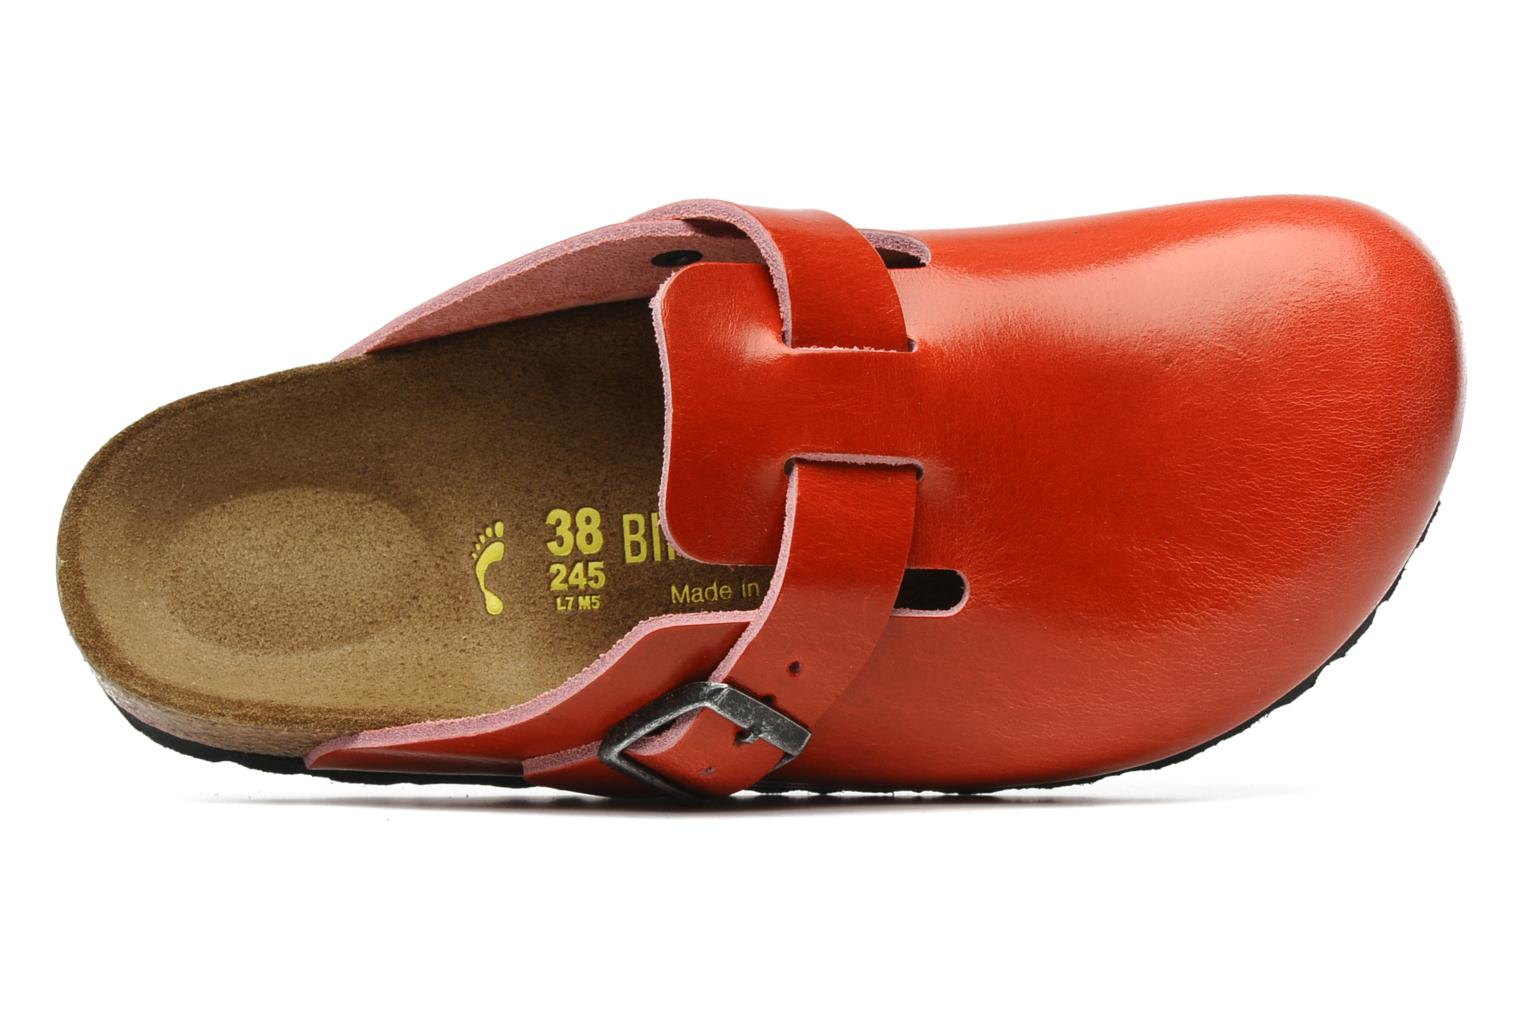 birkenstock boston cuir w rouge mules et sabots chez sarenza 118497. Black Bedroom Furniture Sets. Home Design Ideas